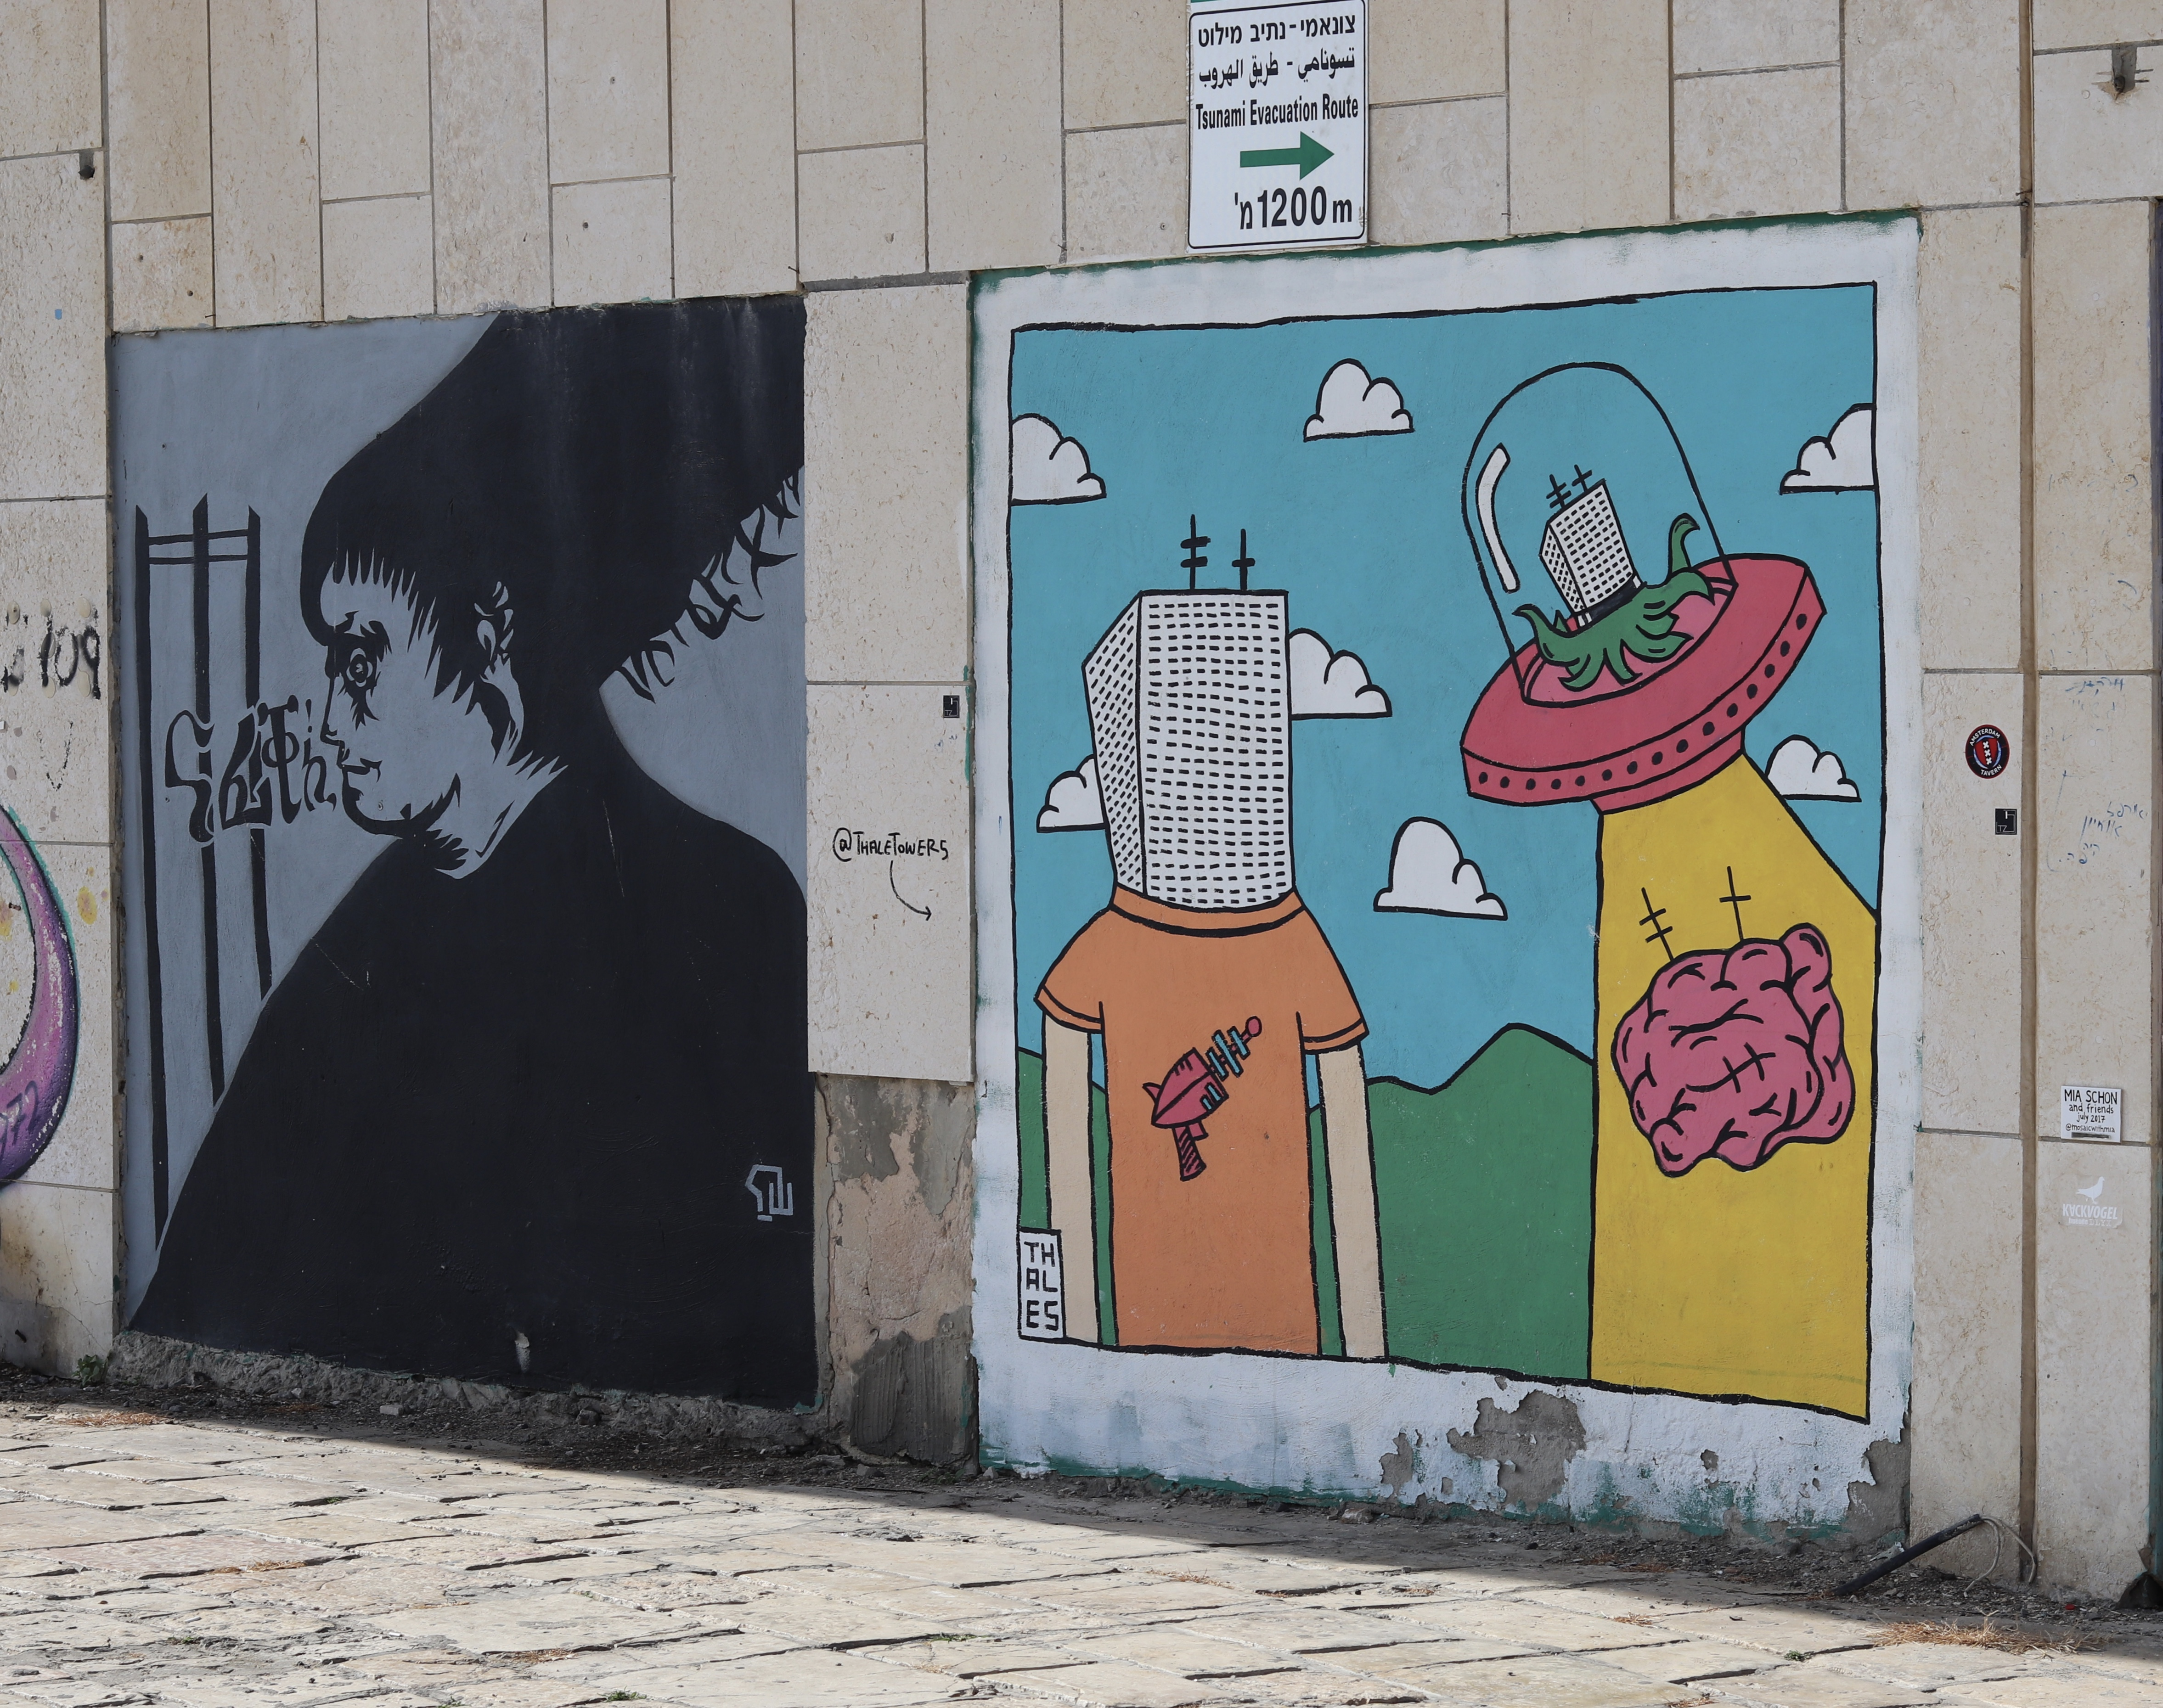 Street art near the beach in Tel Aviv